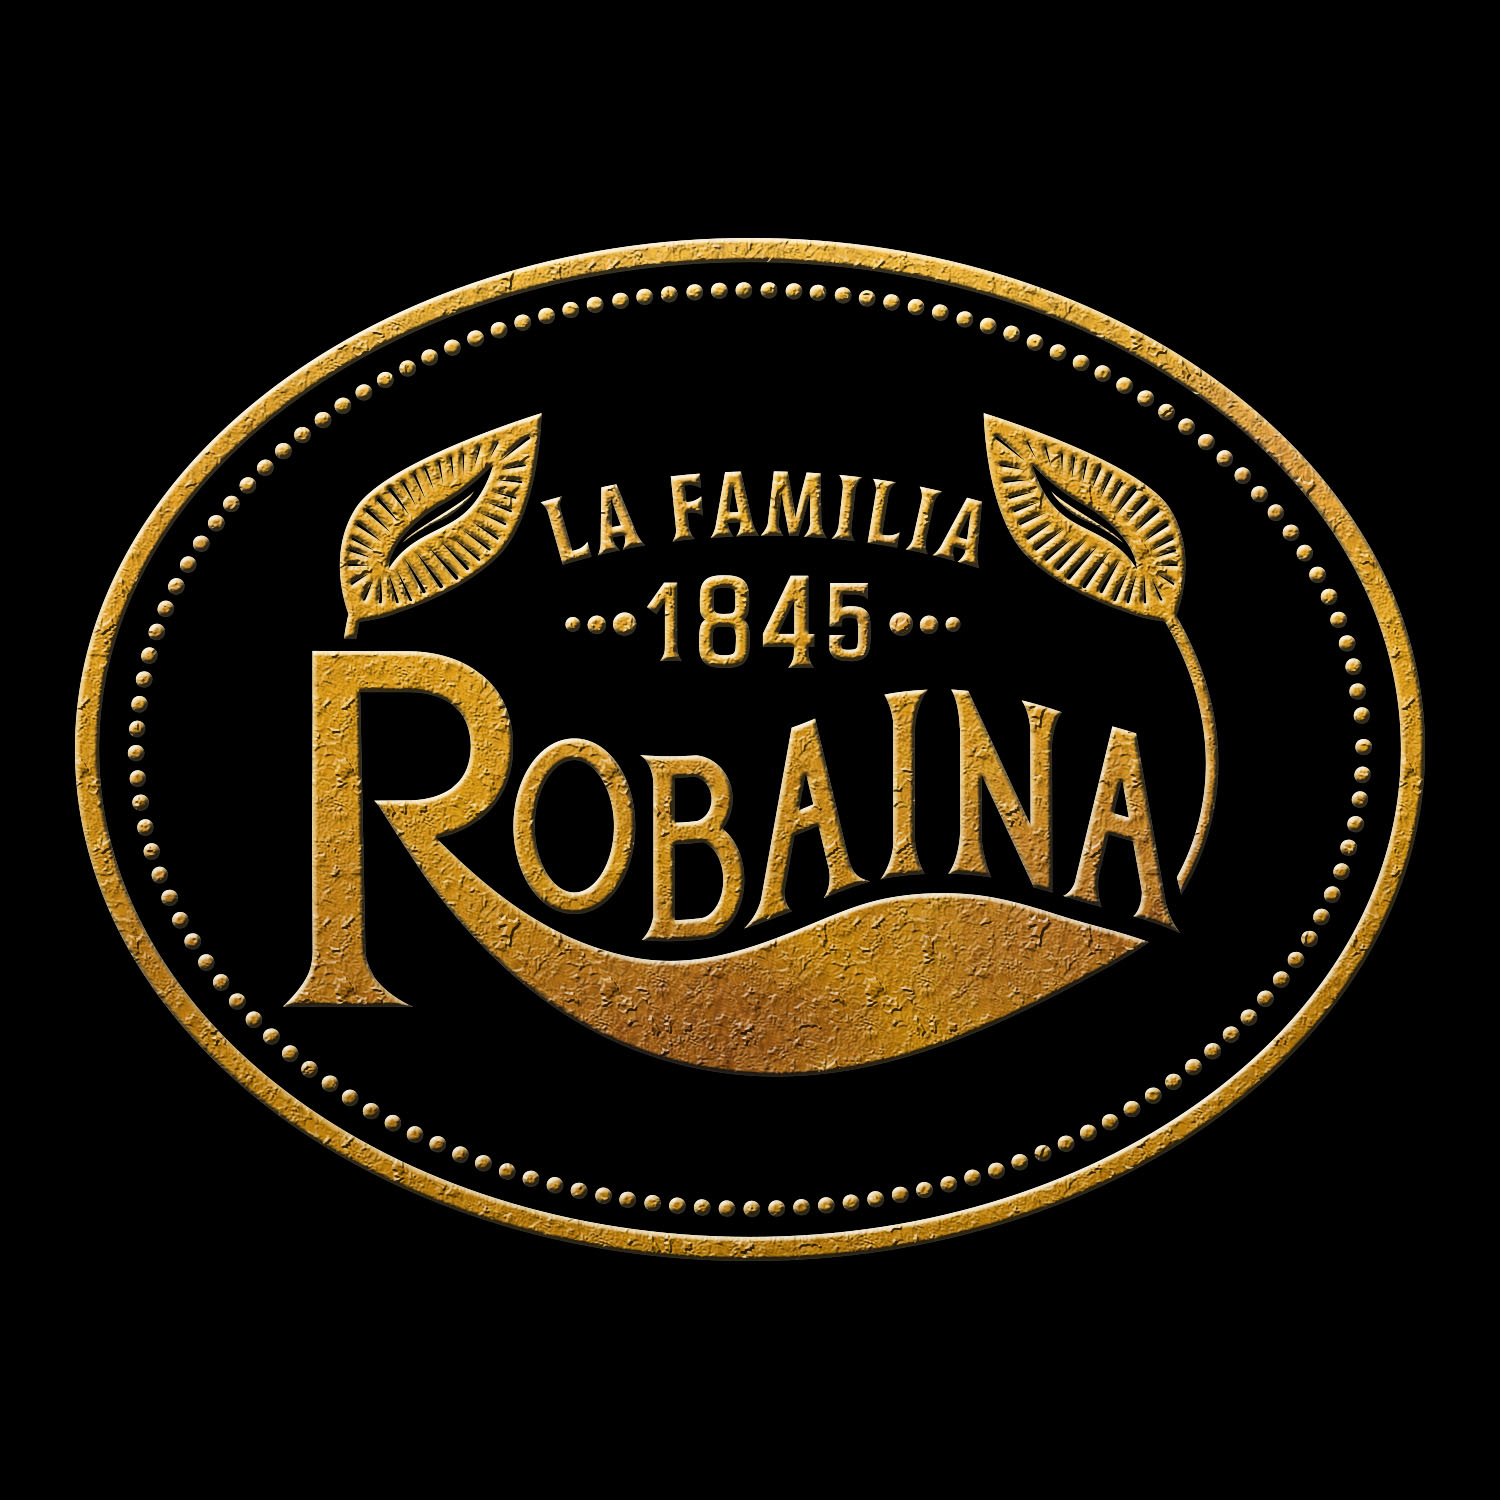 Cigar News: White Hat Cigars Changes Name to La Familia Robaina